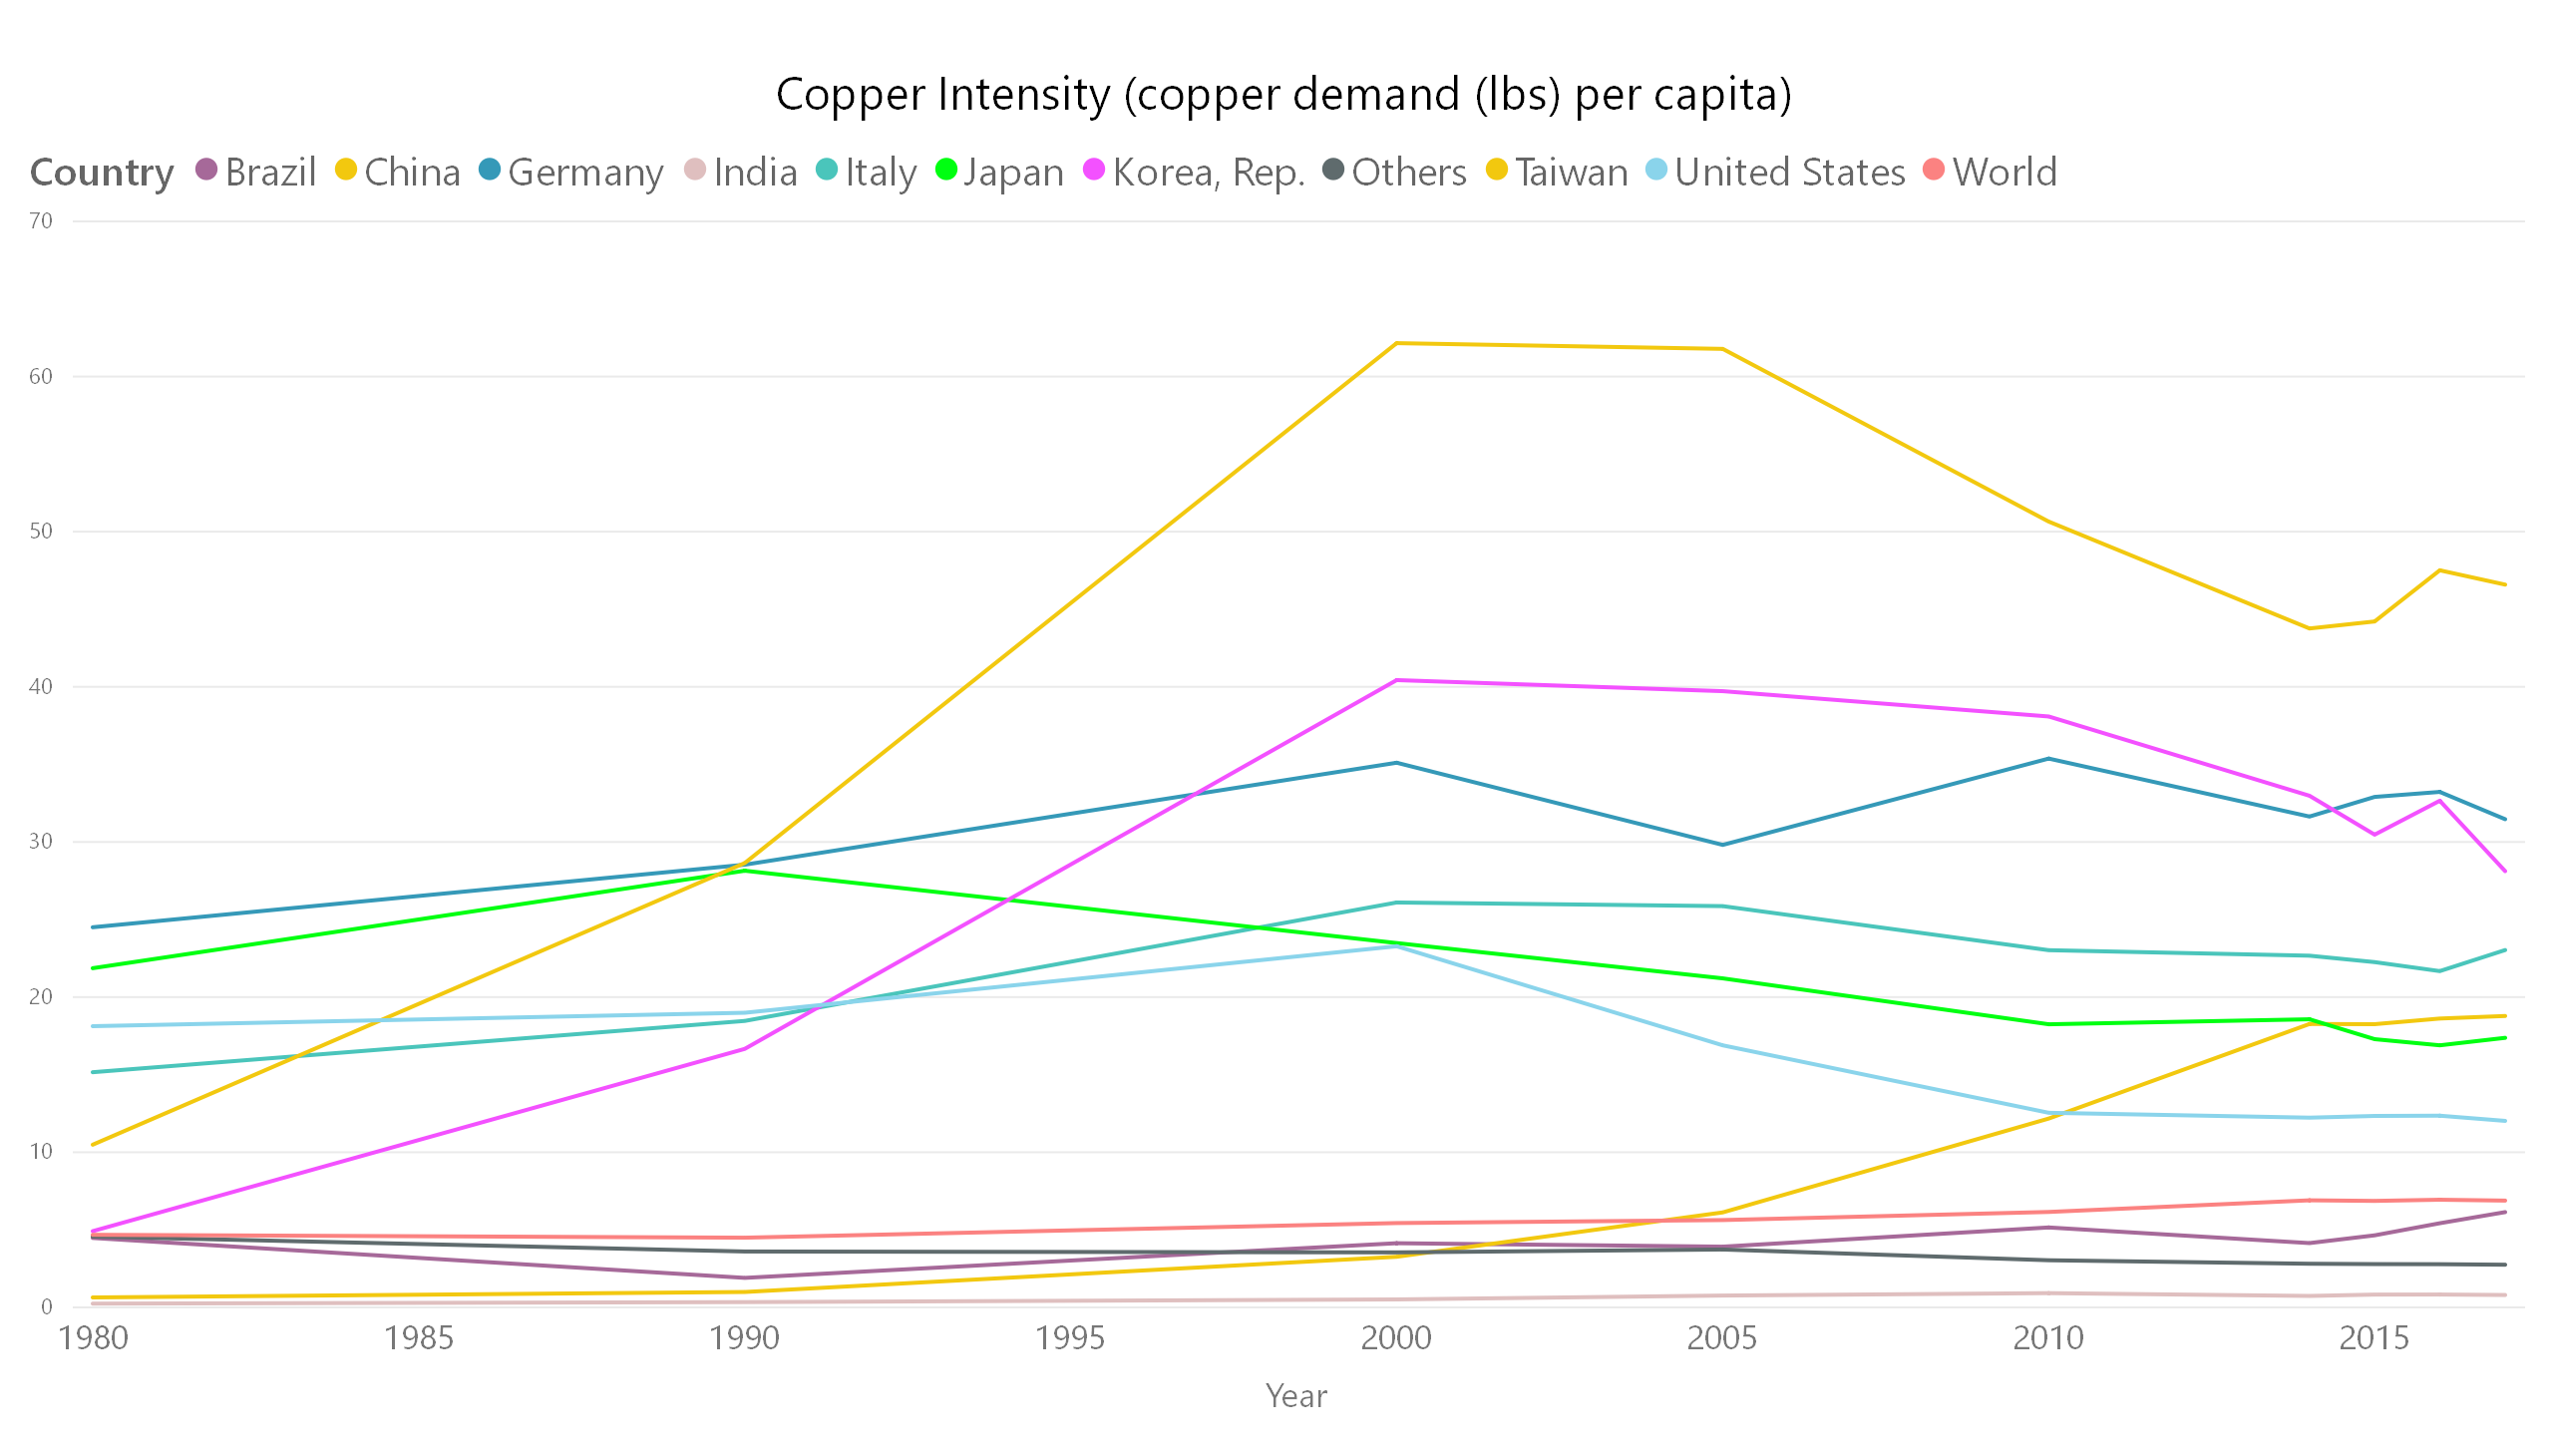 copper demand per capita